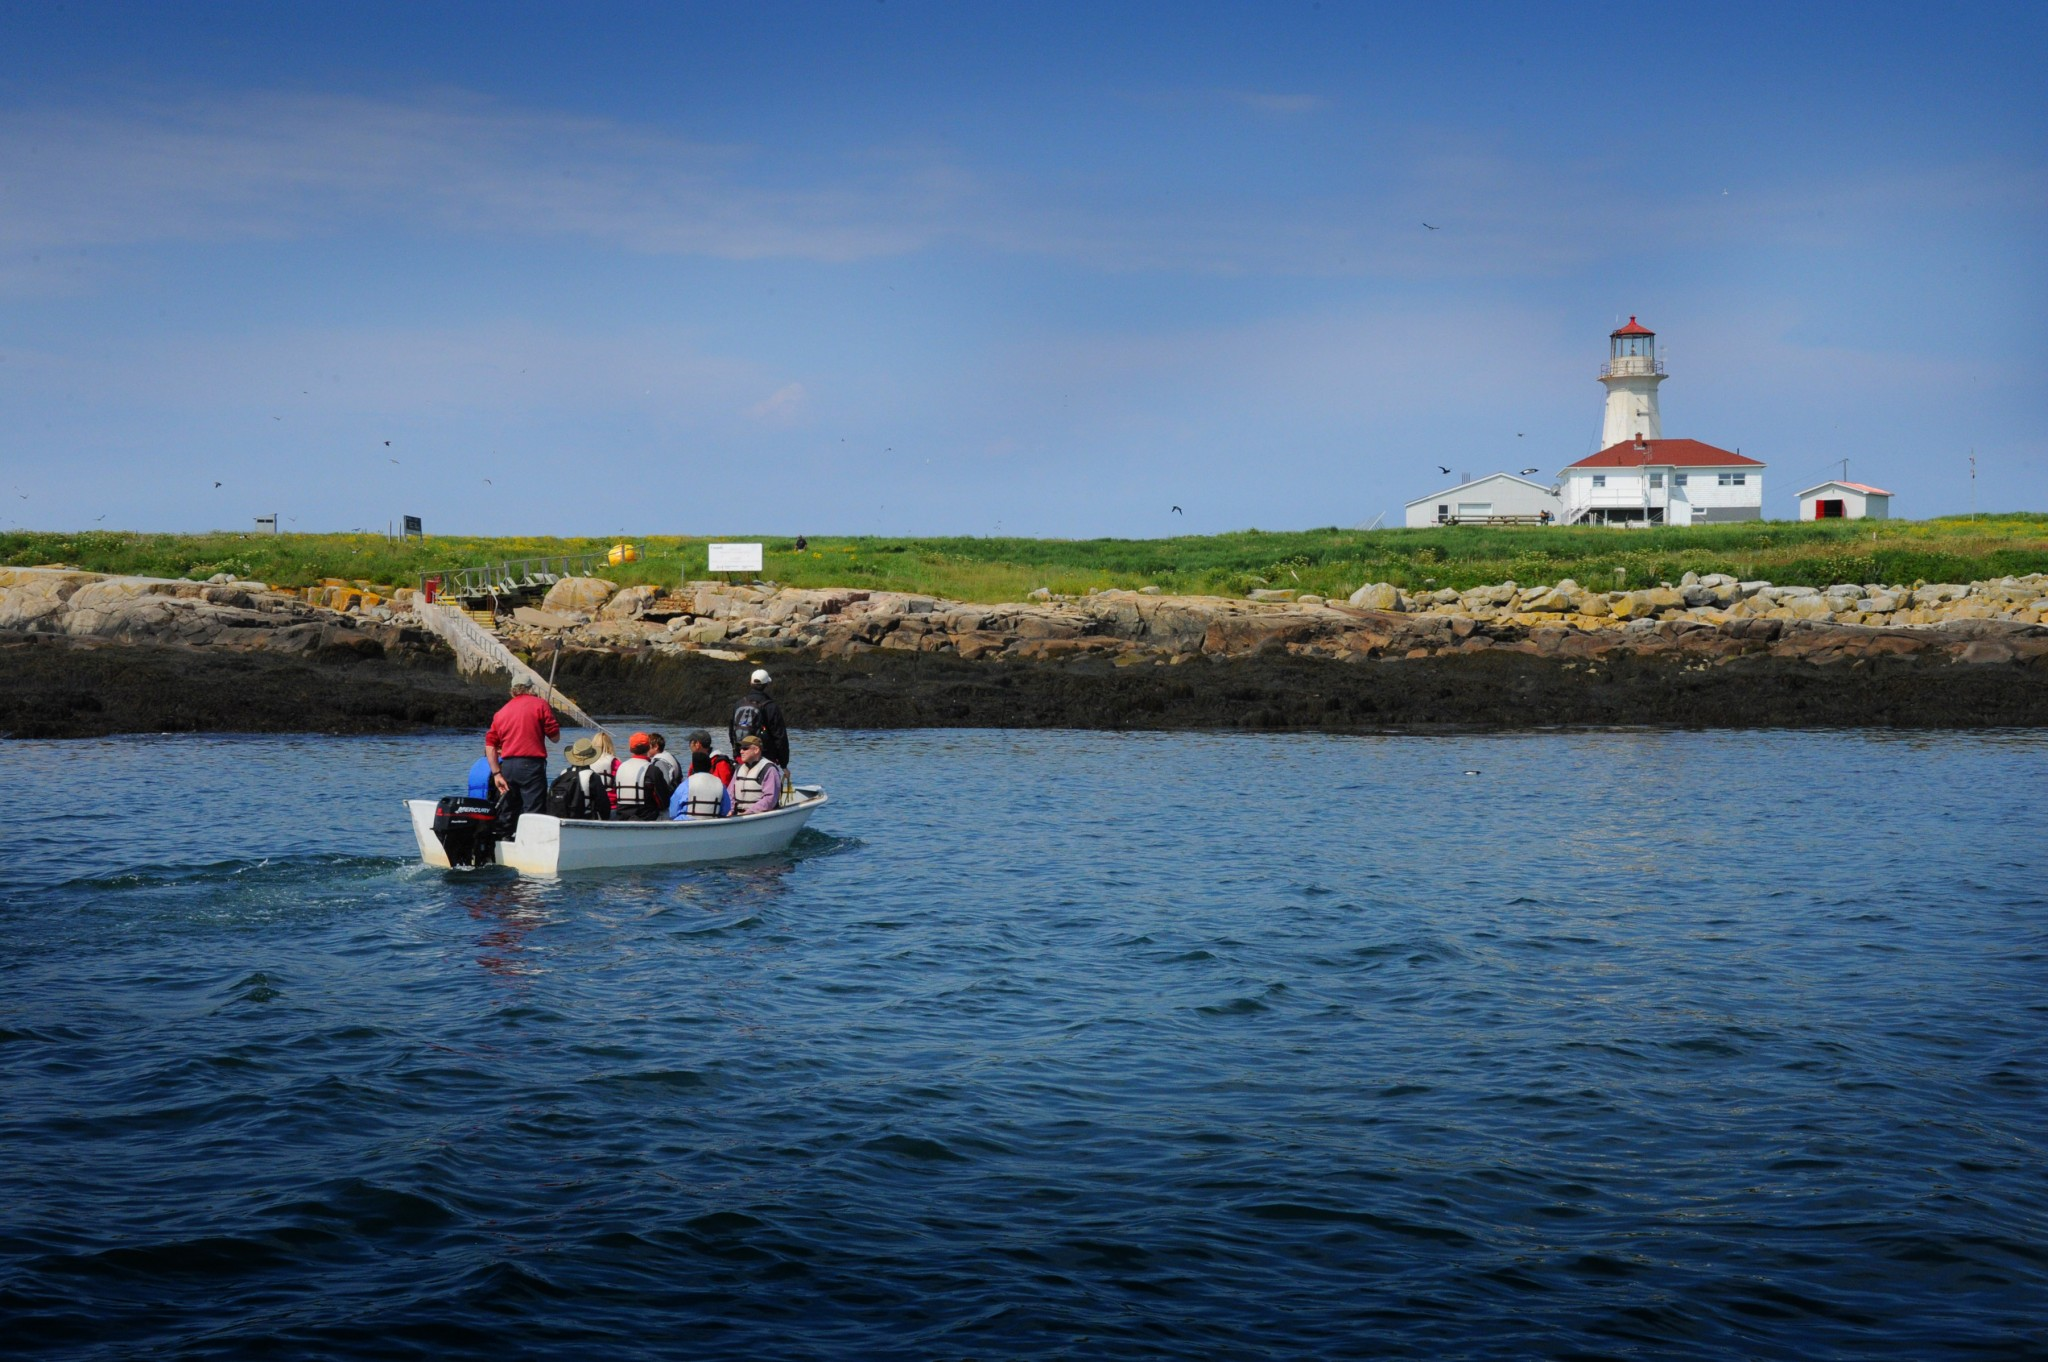 A skiff shuttles visitors to the somewhat risky landing on Machias Seal Island for a close-up look at the seabirds and their young. (Photo by Art Weber)